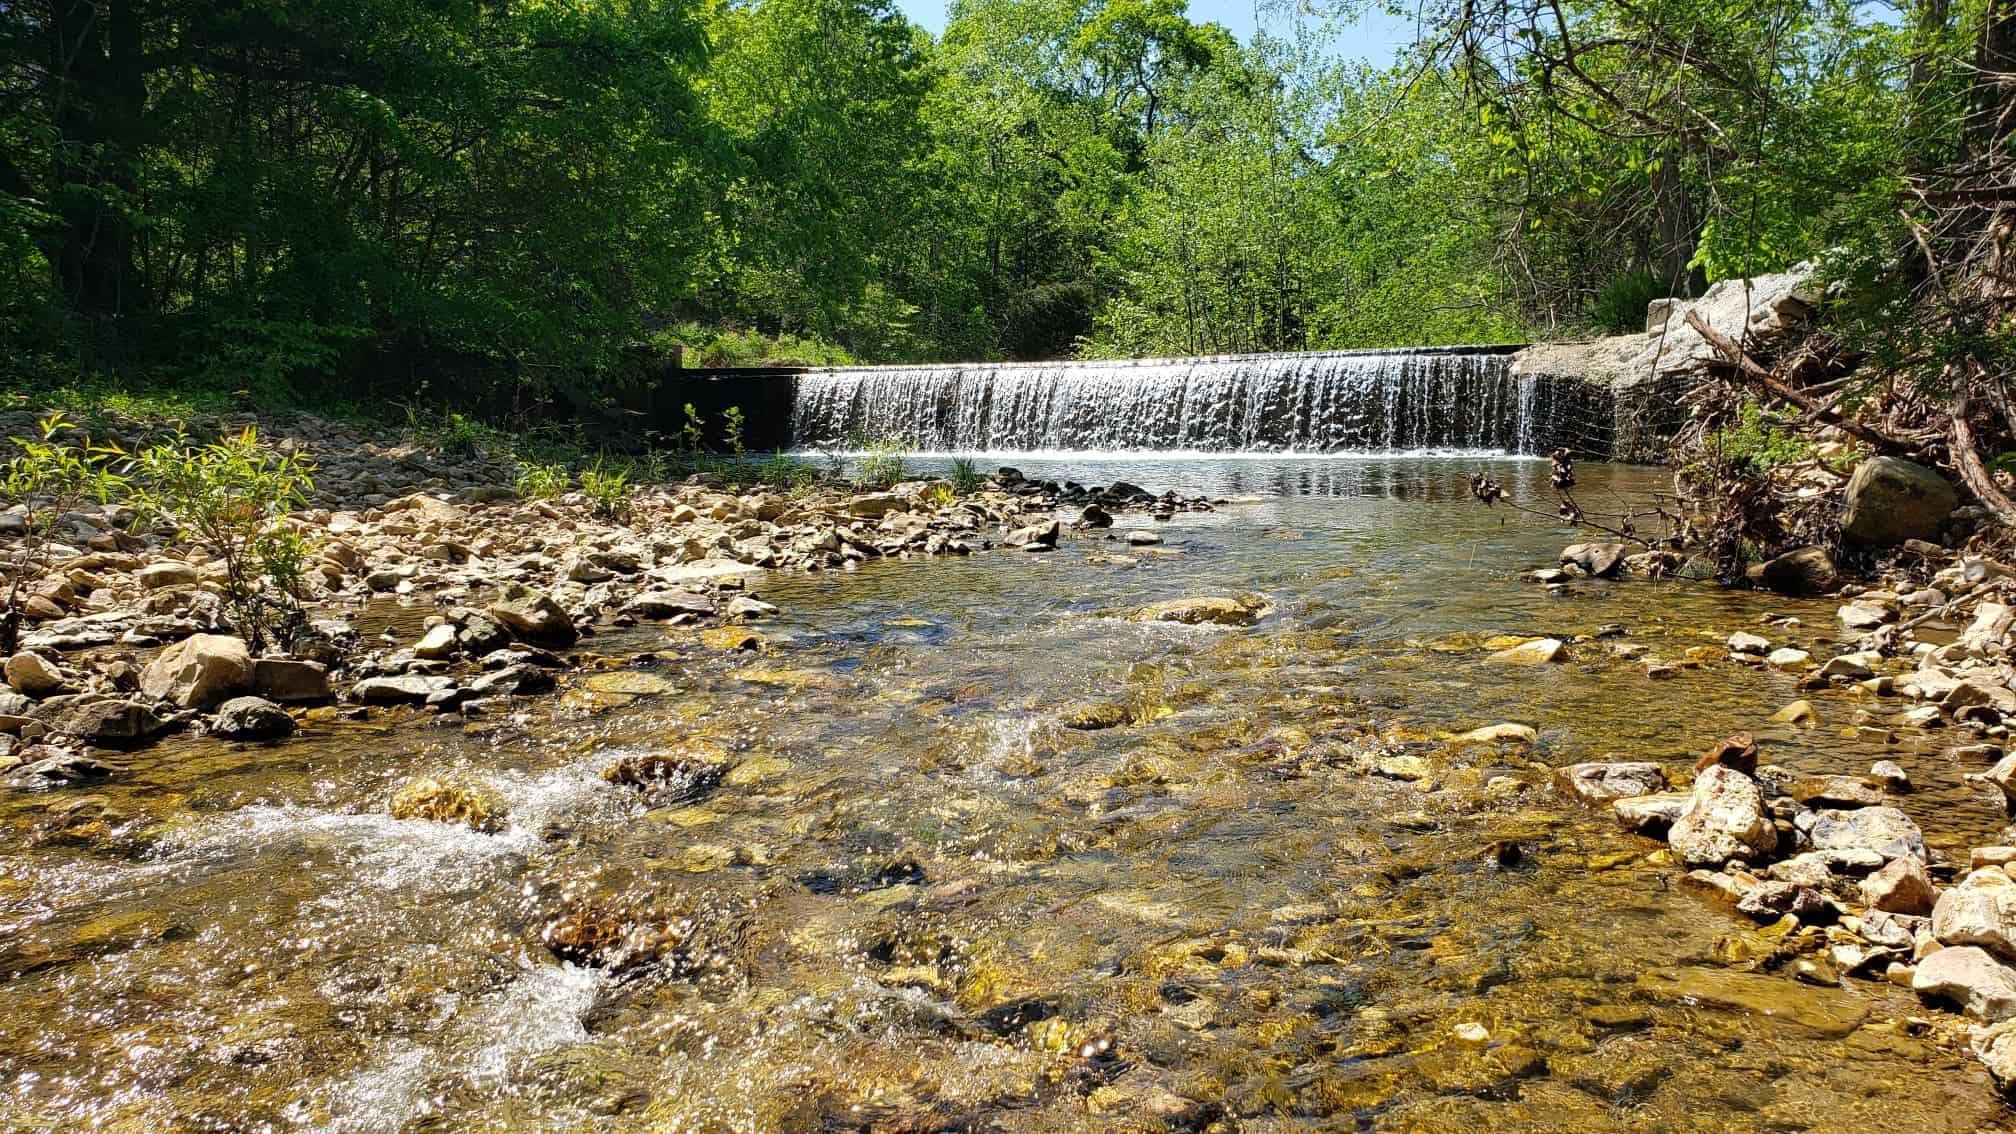 Hunting Property For Sale in Southern MO Ozarks